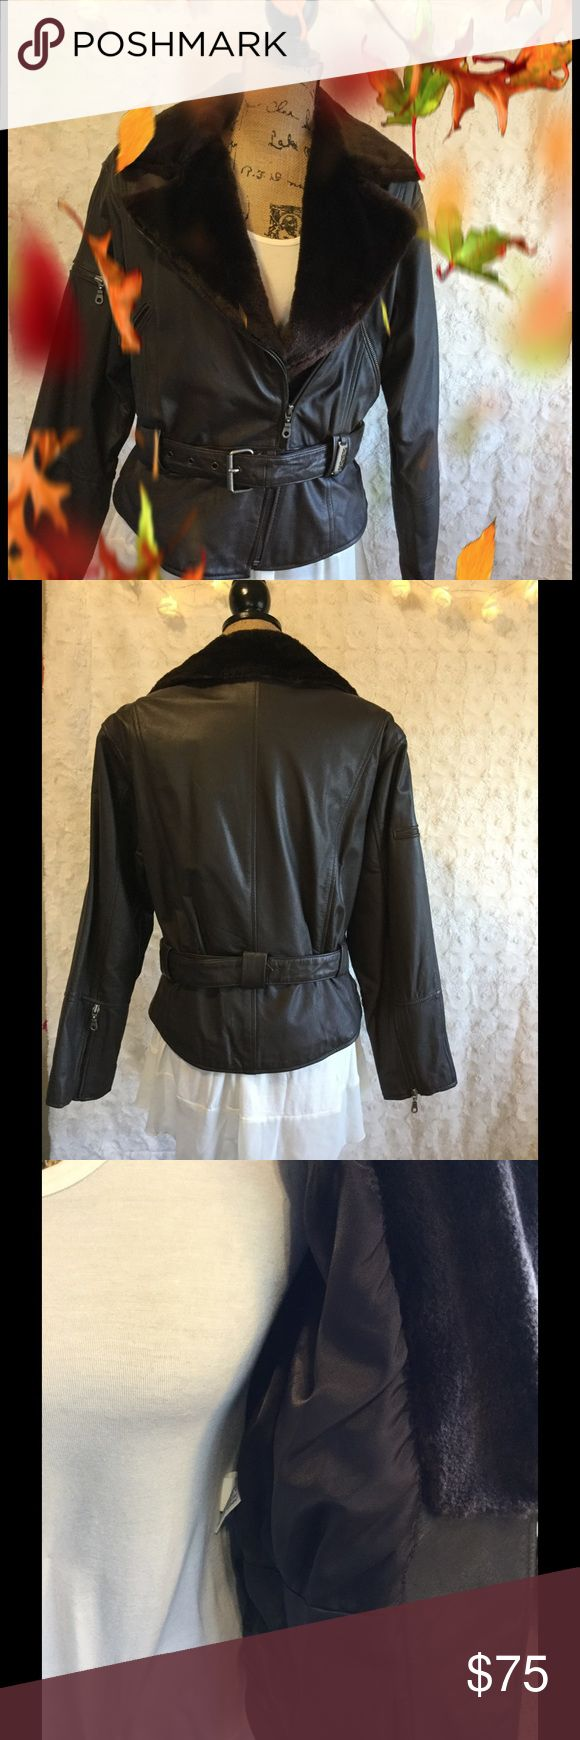 🍂 Leather Bomber Jacket Beautiful all leather brown bomber jacket with faux fur collar, zipper front, zipper cuffs, zipper pockets, belted, shell: leather, lining 50% Nylon, 50% Acetate Together Jackets & Coats